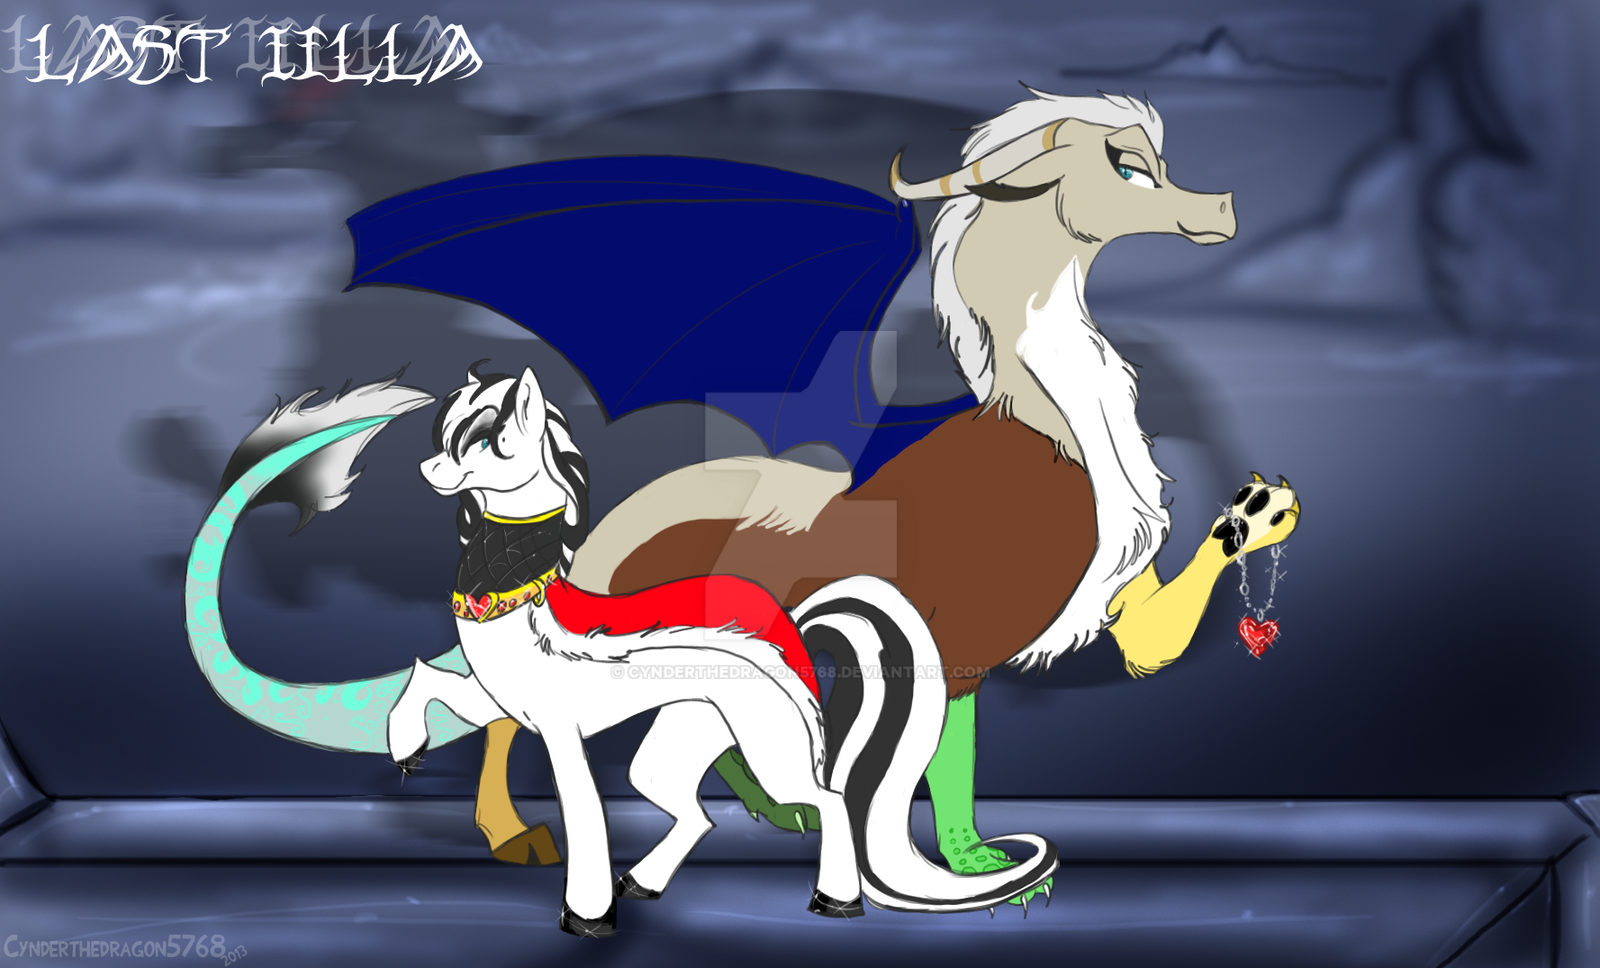 MLP FIM: Lady Iilla reference by Cynderthedragon5768